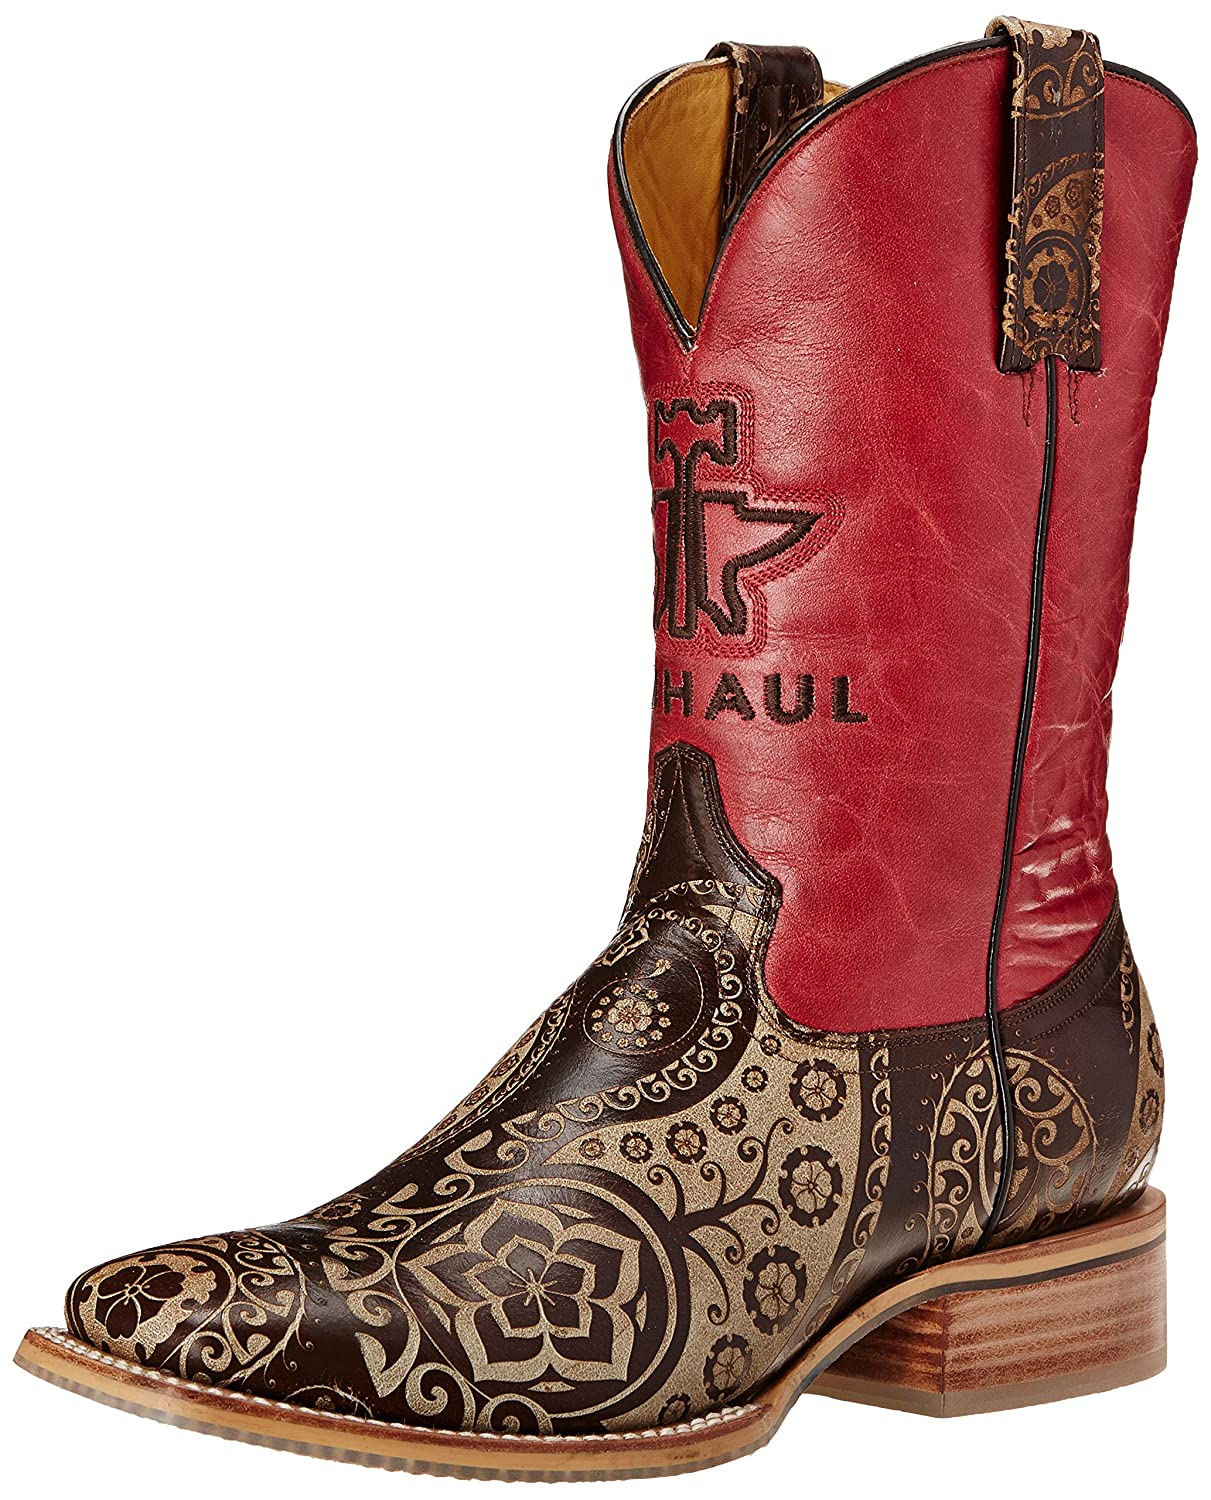 Tin Haul Shoes Women's Paisley Rocks Western Boot B00WHUN1U2 10.5 B(M) US|Tan/Red